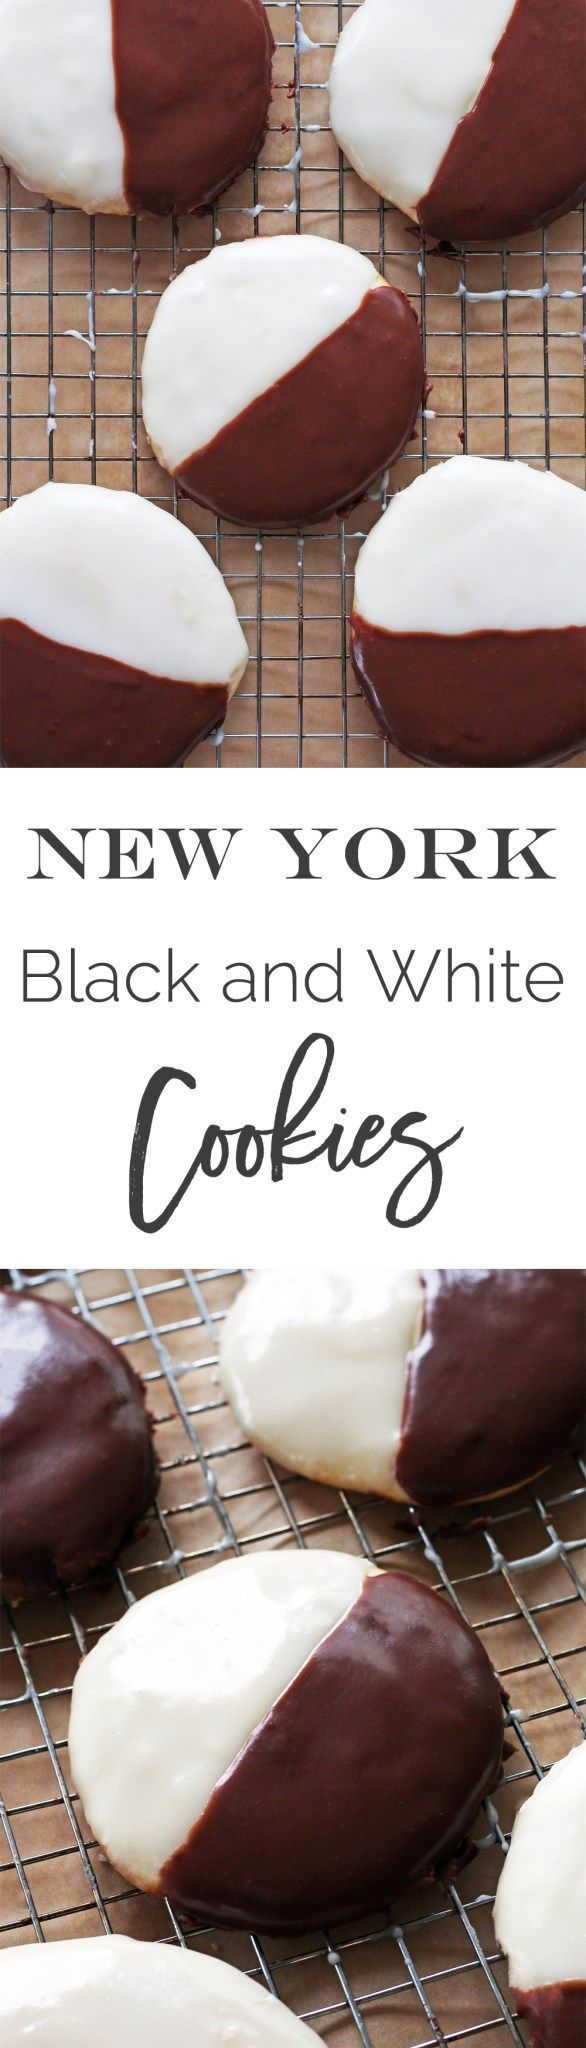 80 best Classic Black and White Sugar Cookies images on Pinterest ...